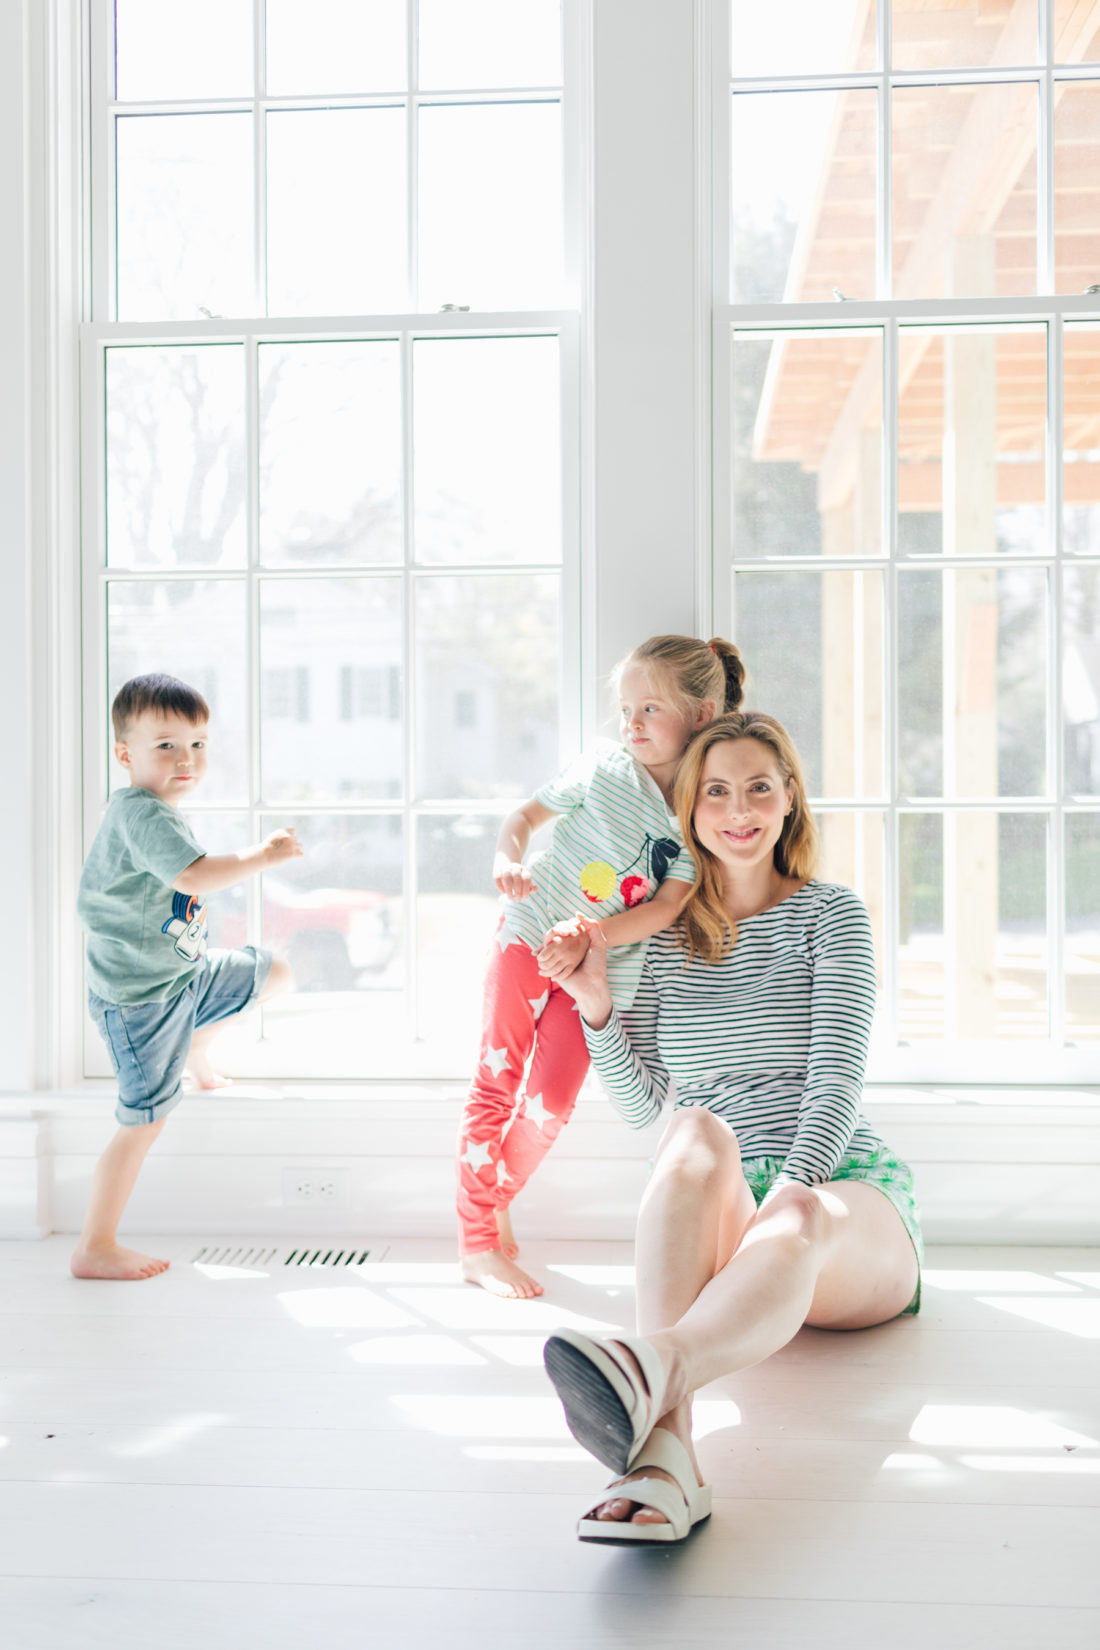 Eva Amurri Martino sits with her kids Marlowe and Major in their new Connecticut home